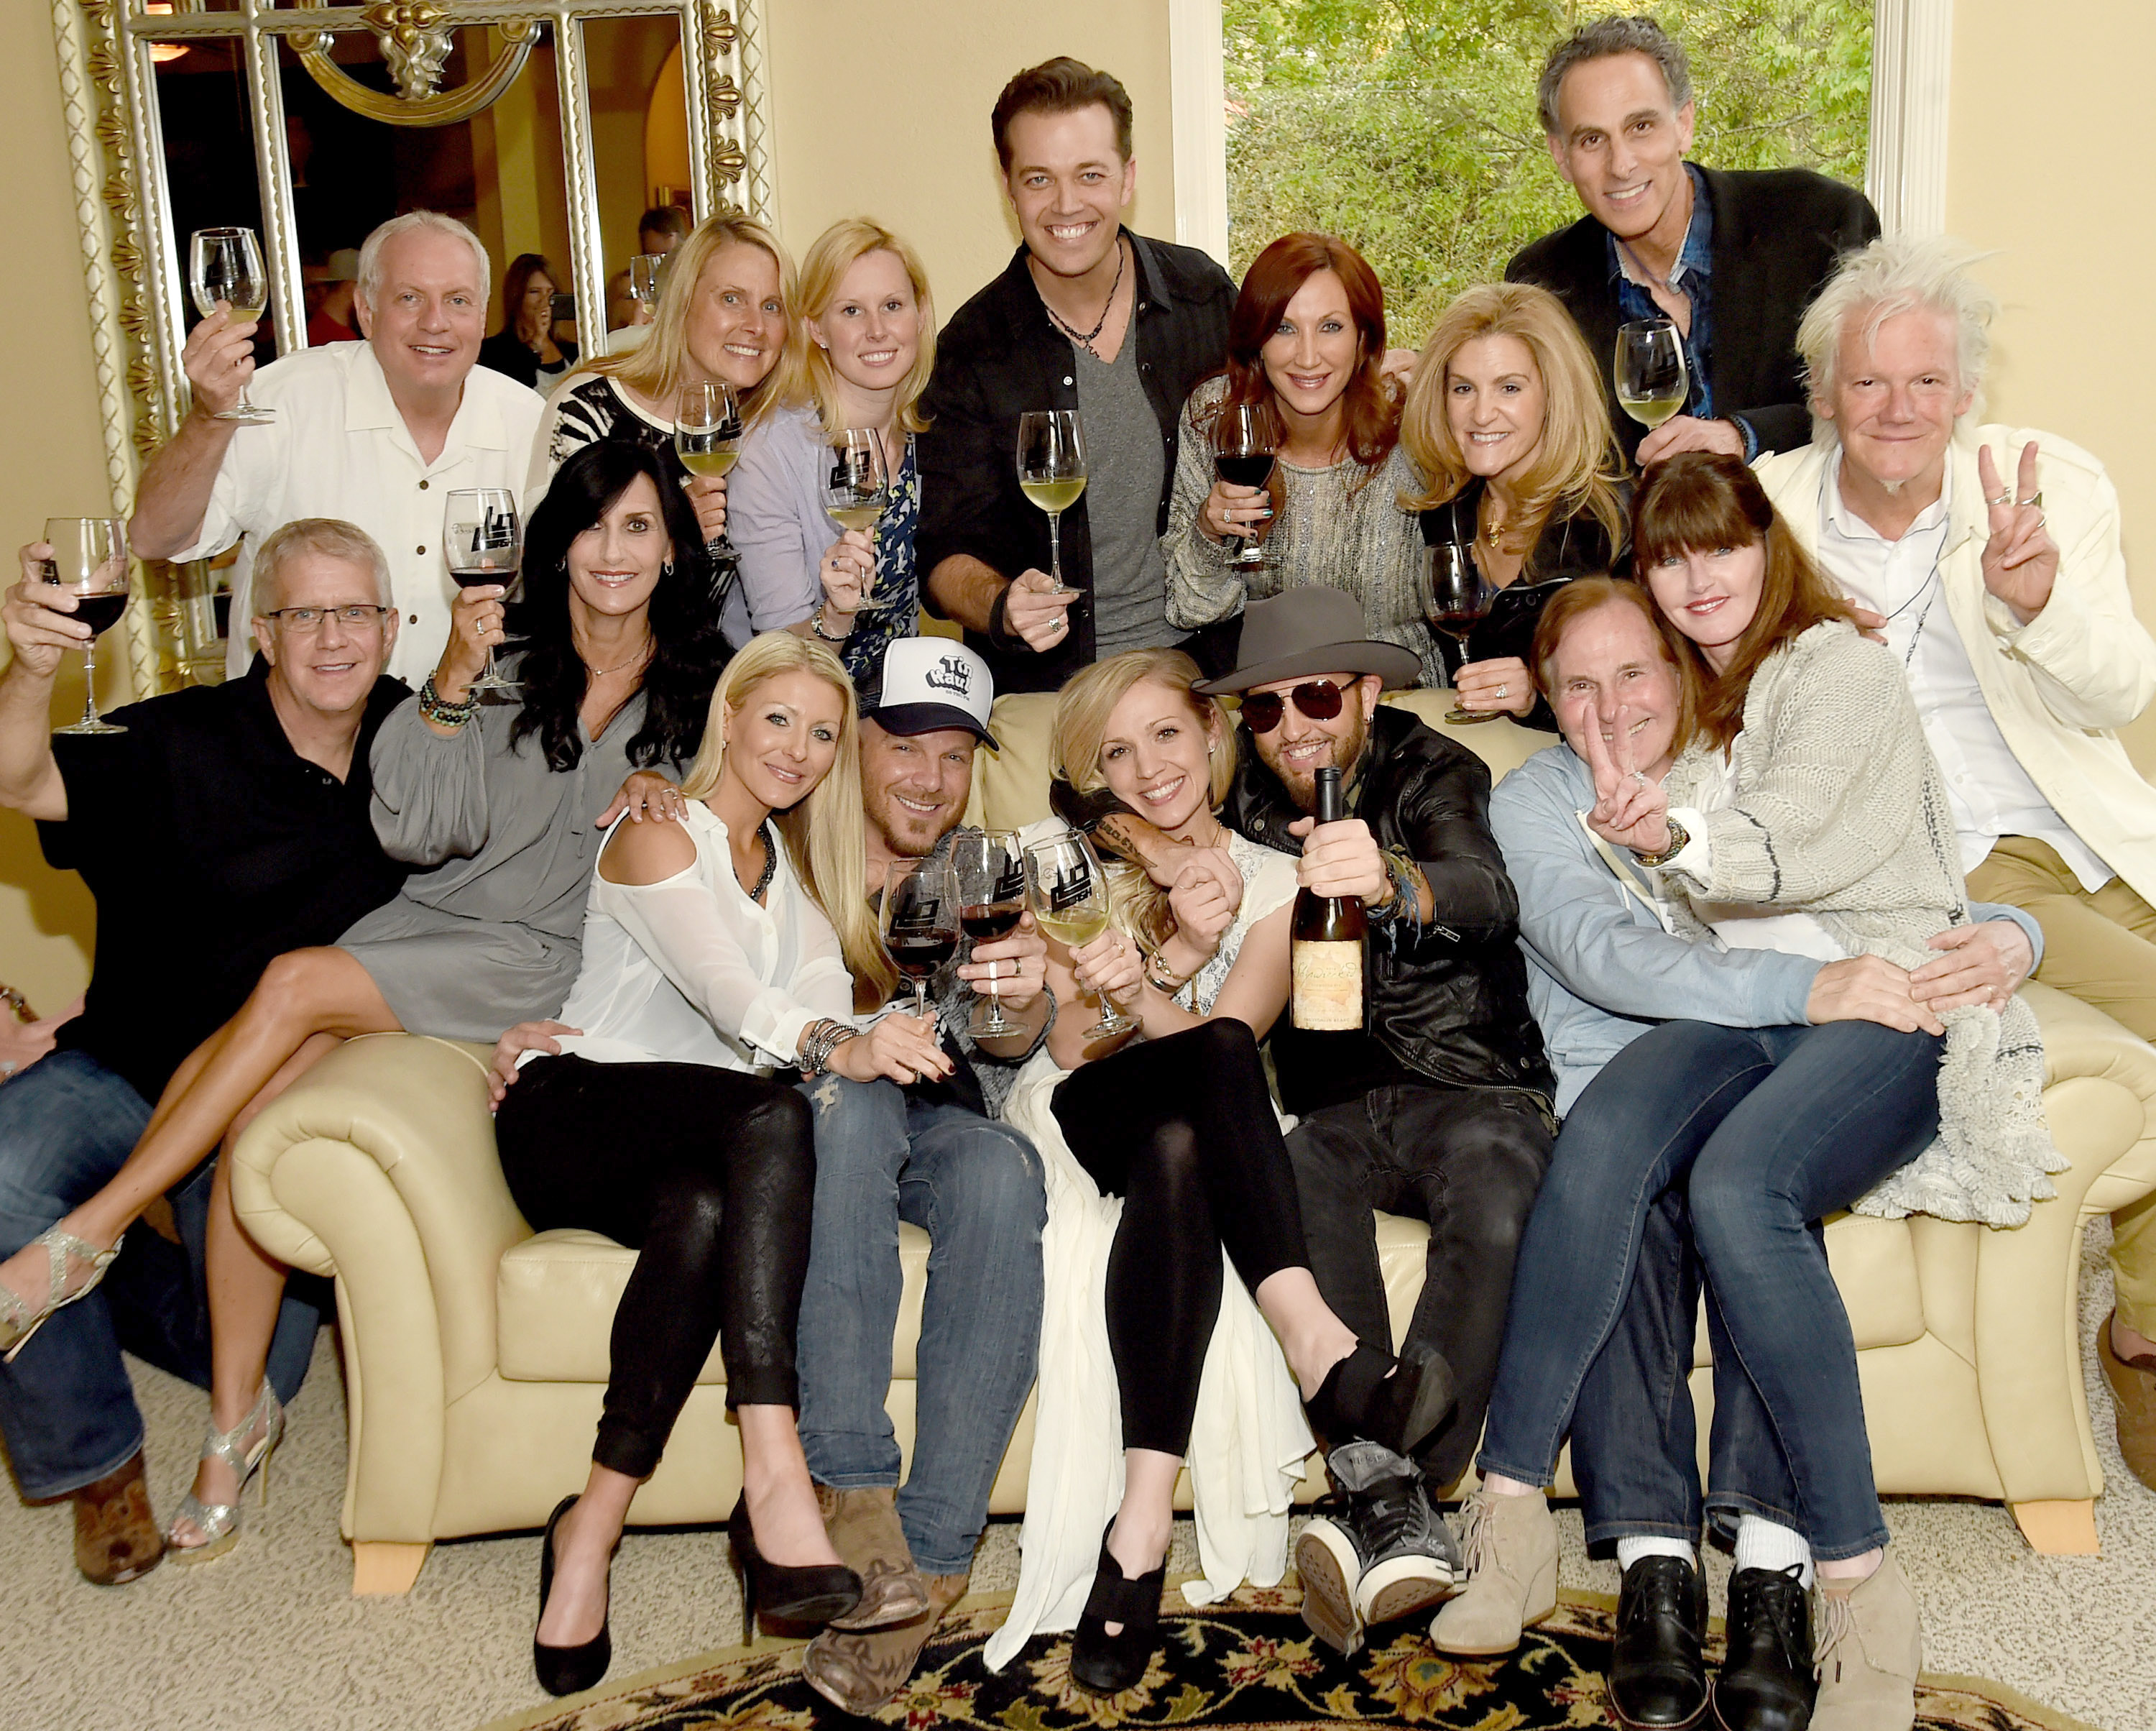 Pictured (L-R), Lower front row: Kaitlyn Lucas, Chris Lucas (LOCASH), Kristen White, Preston Brust (LOCASH), Butch Waugh, Belinda Waugh, Skip Bishop. Middle: Jon Ozor (Stonum Vineyards), Rhonda Ozor Top row Ken Little, Julie Little, Kelly Ziegenfuss (Reviver), Lucas Hoge (Reviver artist), Laura Lynn, Jennifer Ross, David Ross (Reviver).